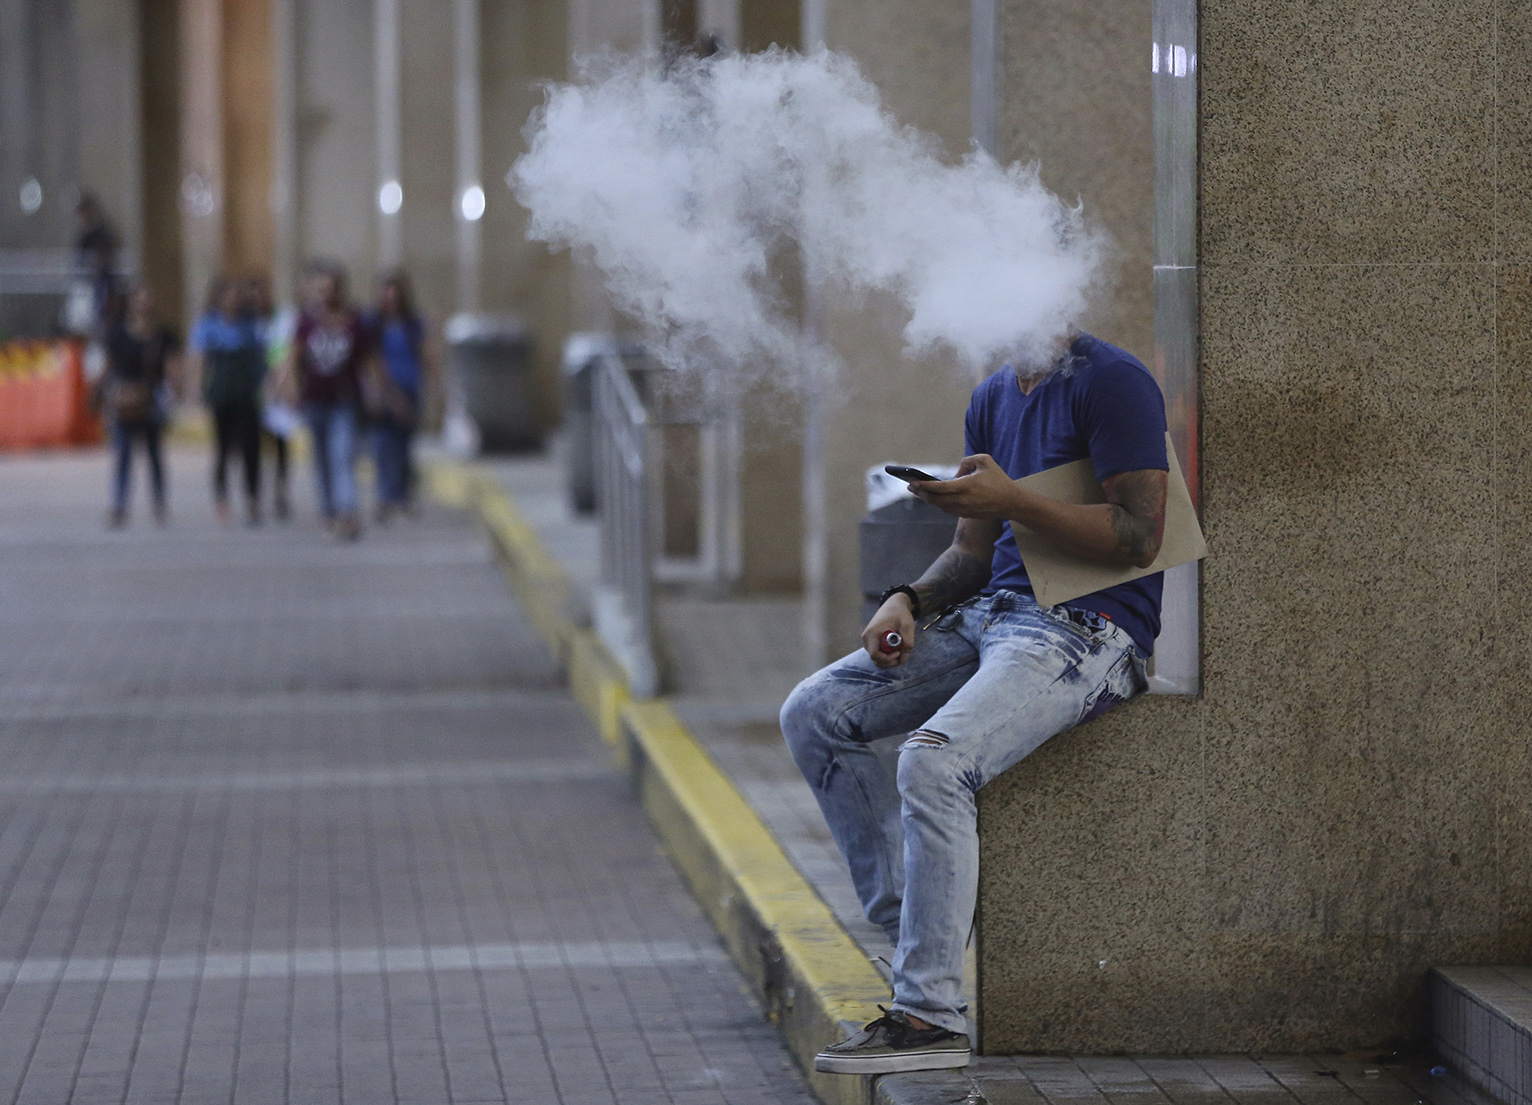 banning smoking in public places thesis Read chapter 5 the background of smoking restrictions on smoking in public places california law takes effect banning smoking in bars that do not have a.